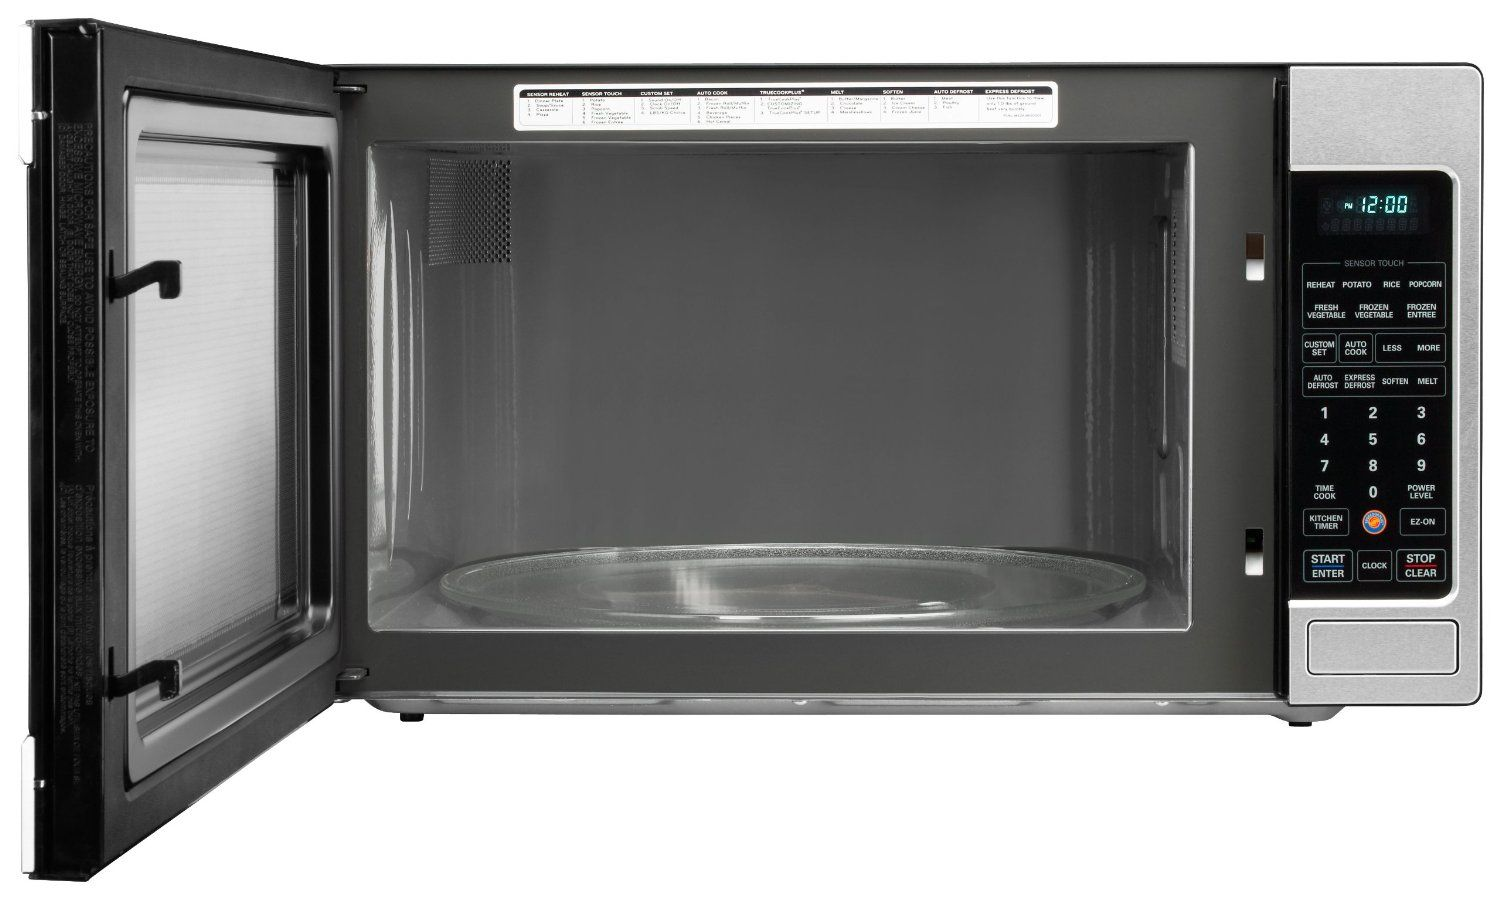 Amazing Recipes to Make in the Microwave